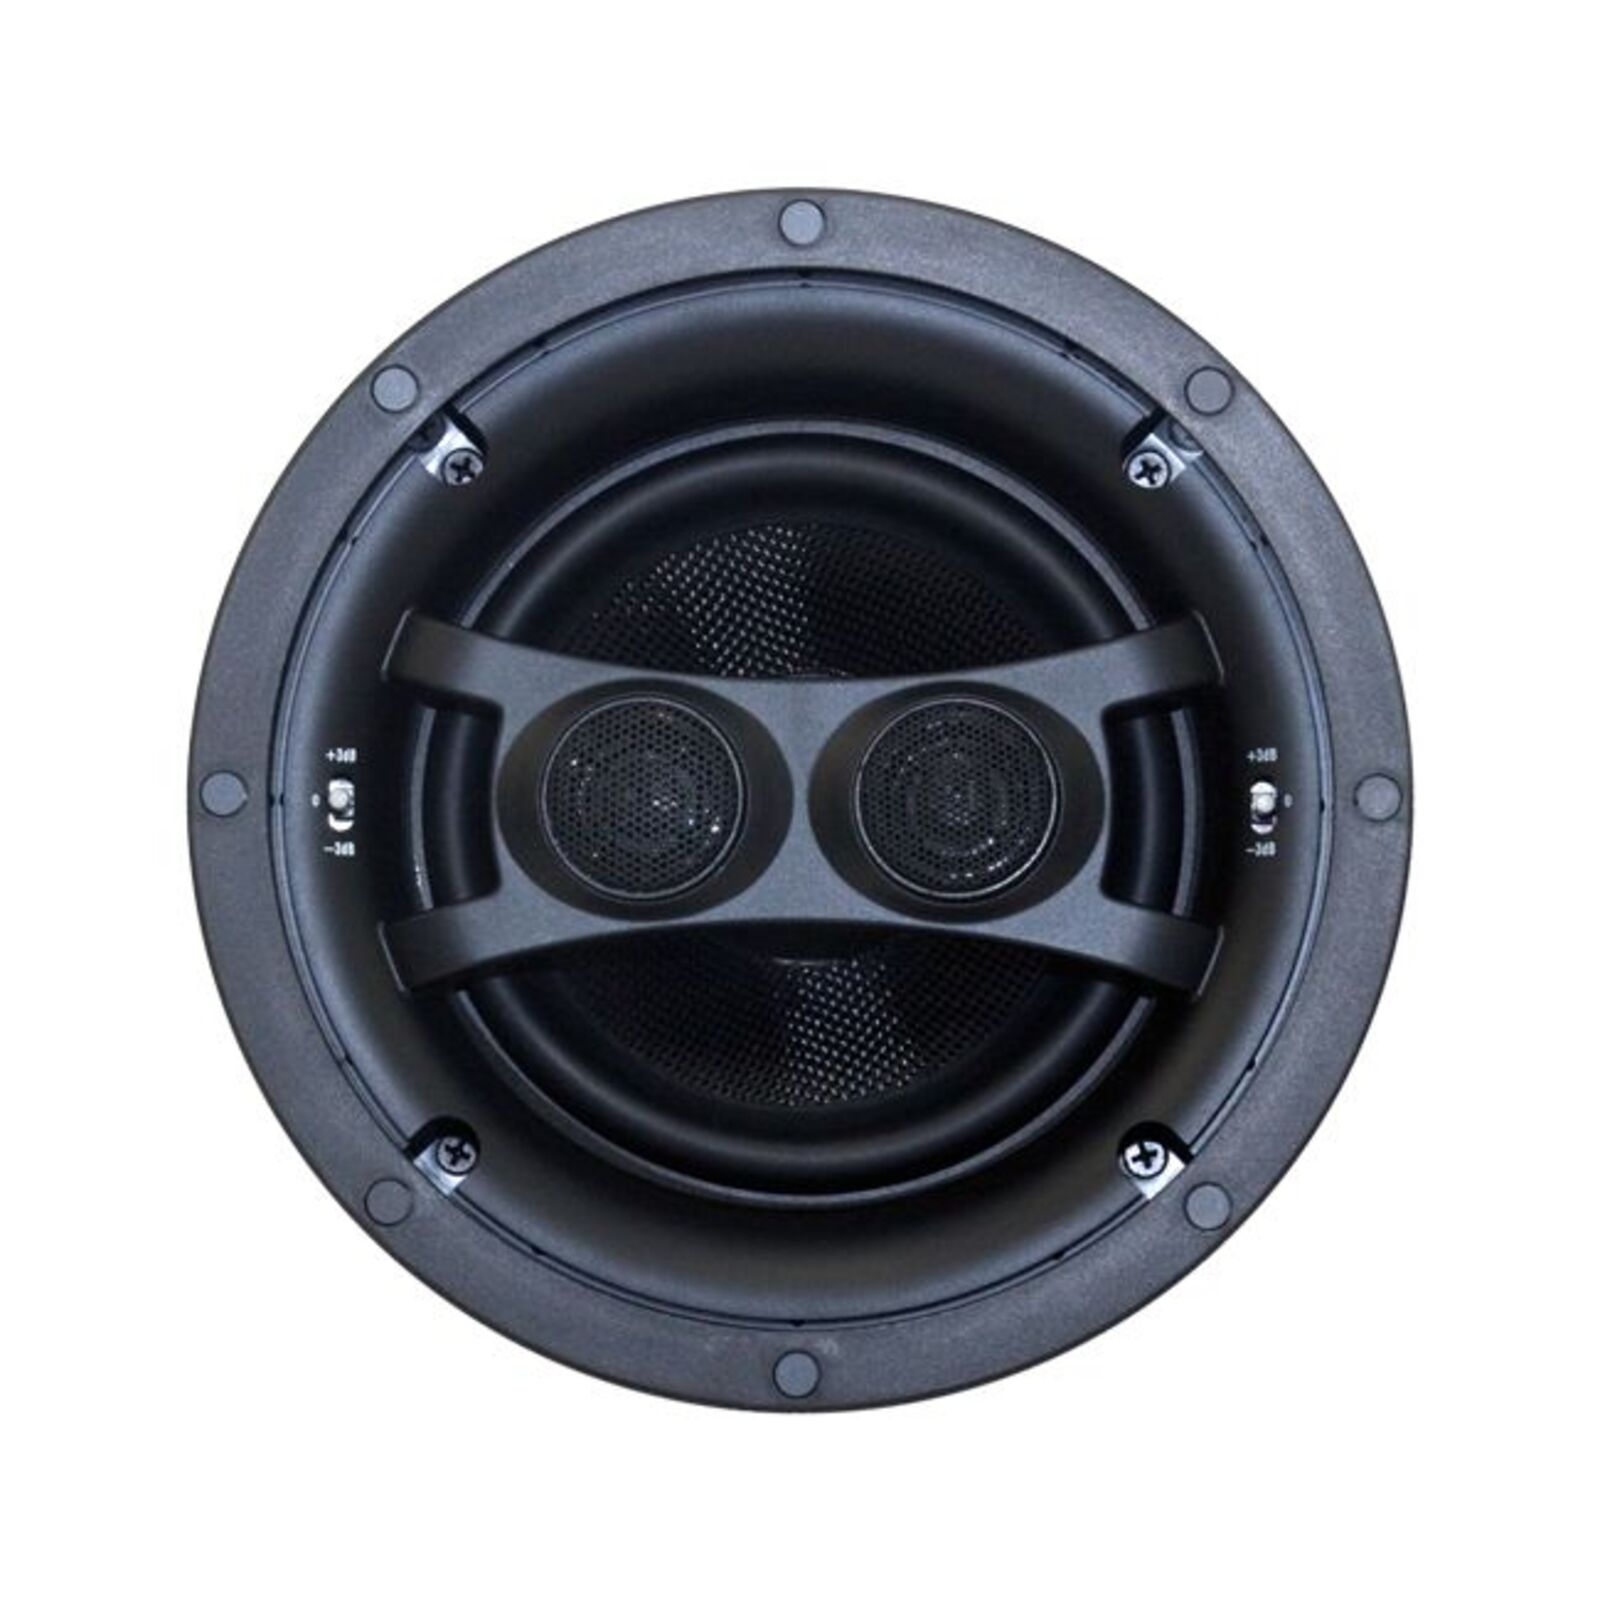 """Earthquake 6.5"""" Ceiling Stereo Speaker Dual Voice Coil Woofers With Kevlar Cone Bodies 6.5"""" Ceiling Stereo Speaker Dipole/Bipole"""